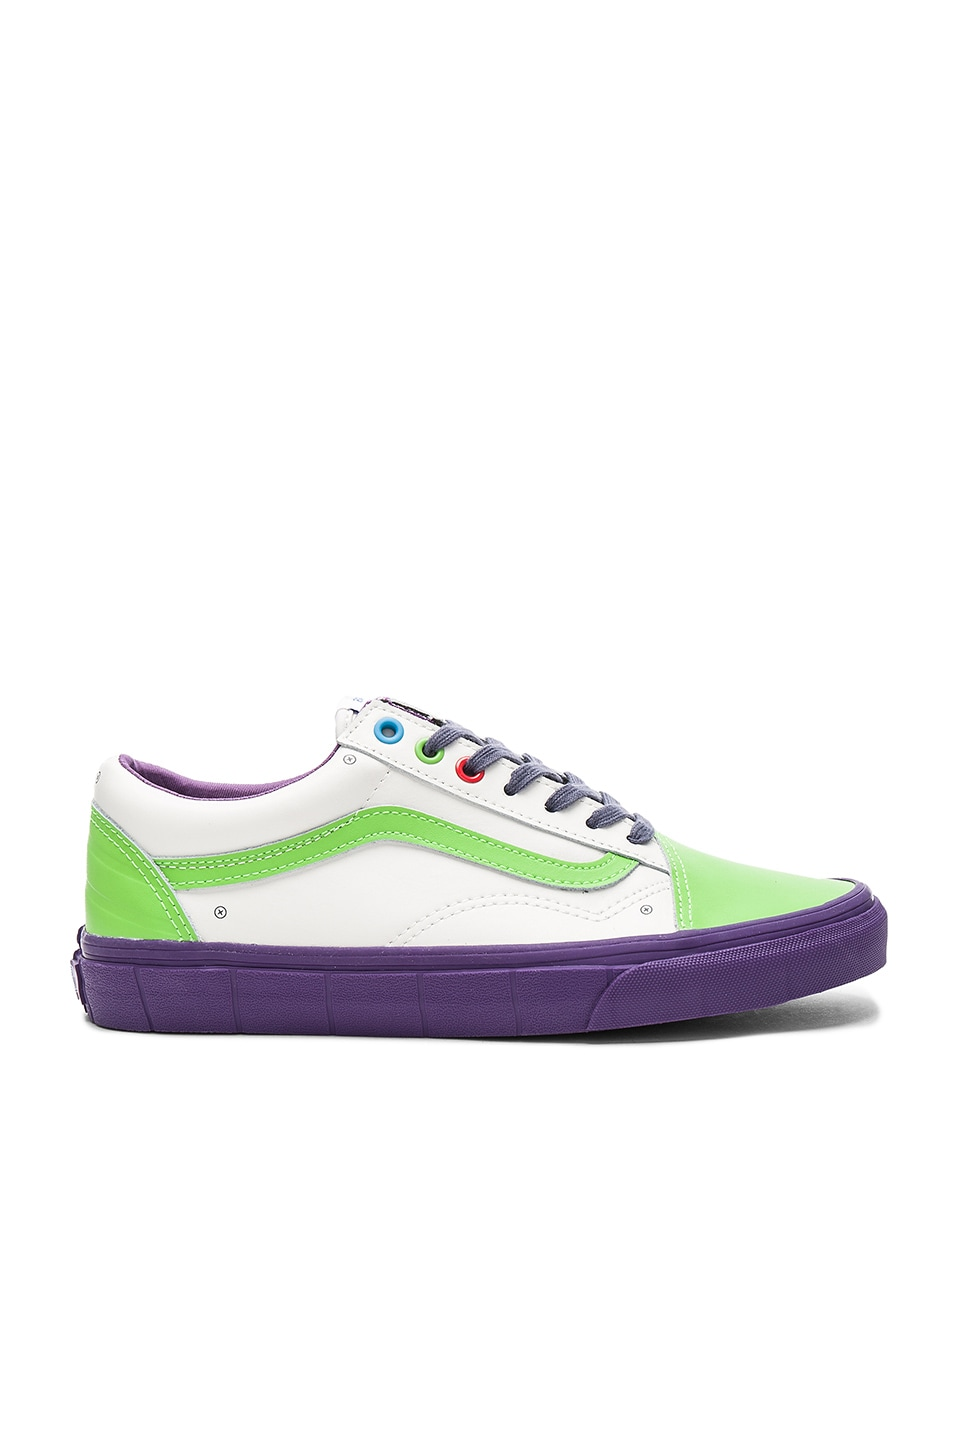 Vans Toy Story Old Skool blanco